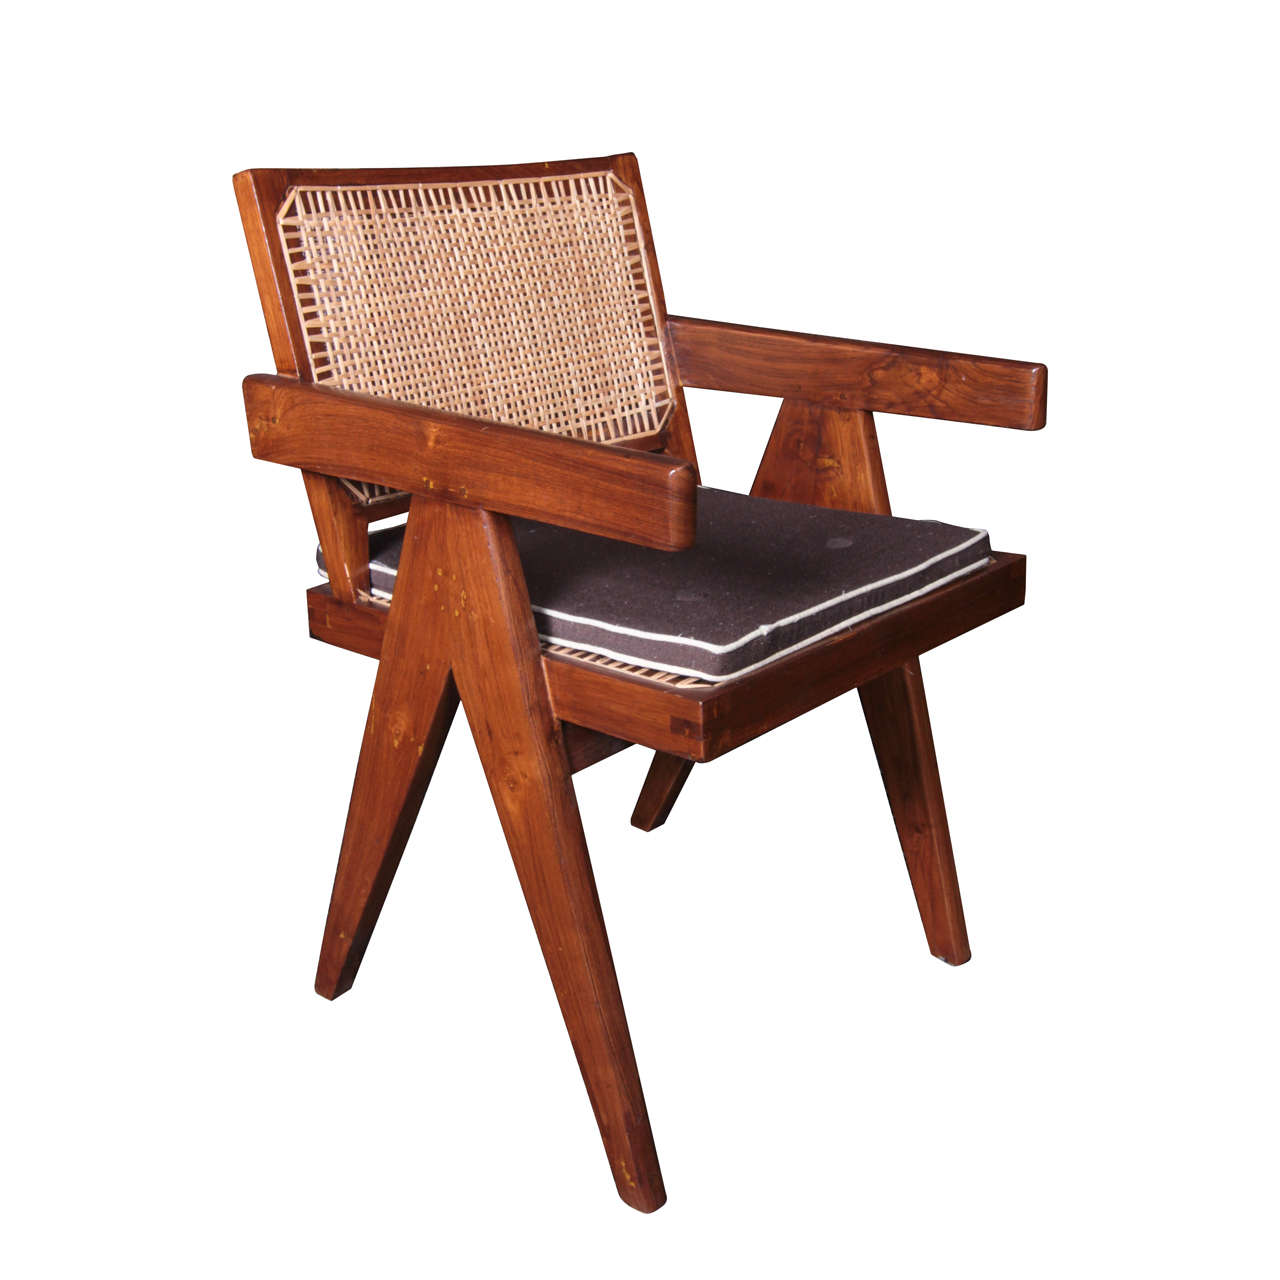 conference chairs for sale lowes rocking pierre jeanneret chair at 1stdibs